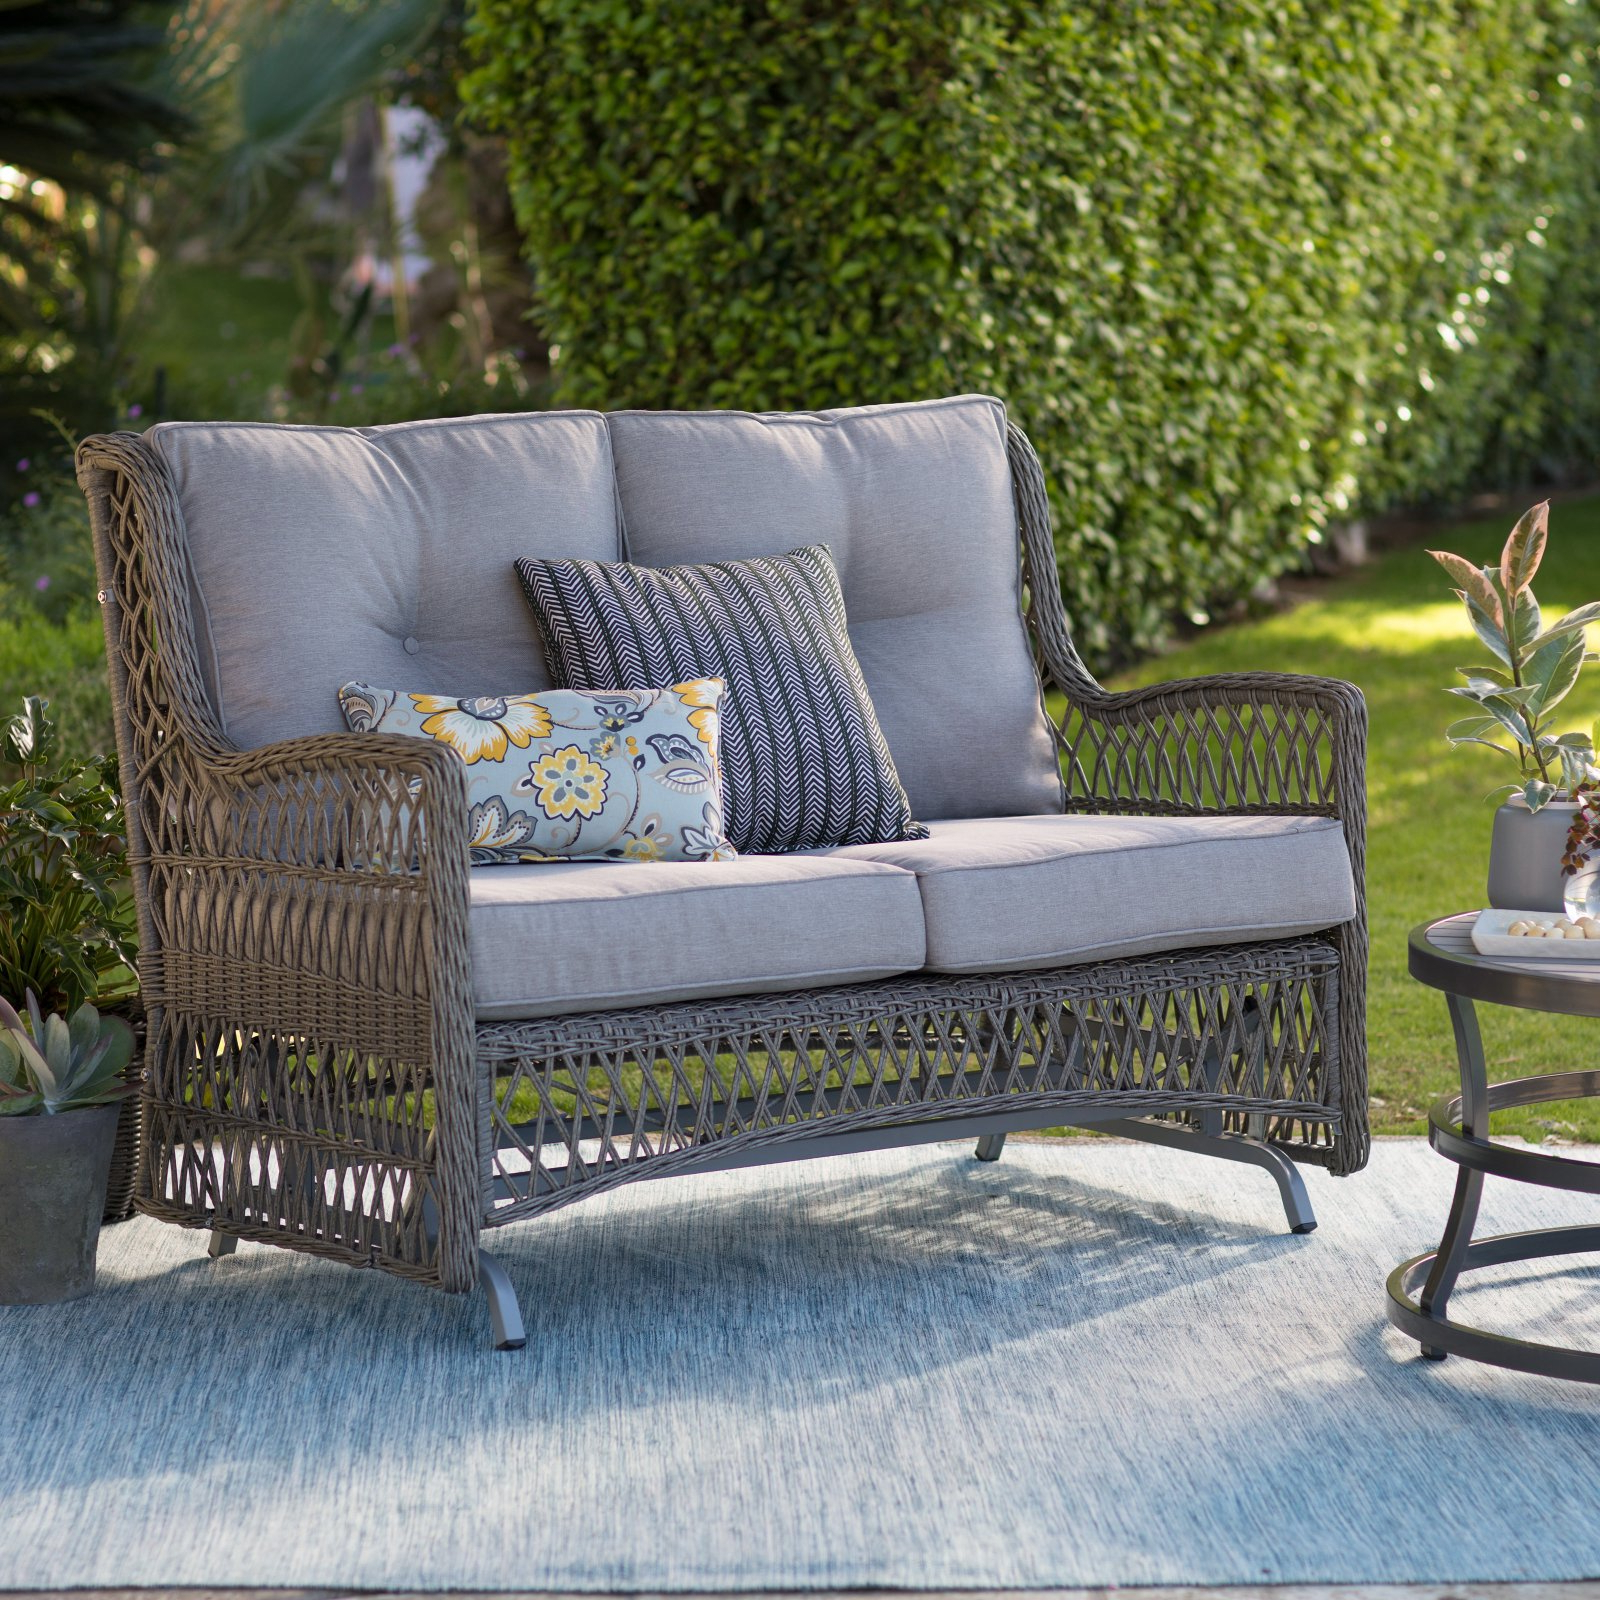 Belham Living Bristol Outdoor Glider Bench With Cushions With Most Up To Date Bristol Loveseats With Cushions (View 20 of 20)